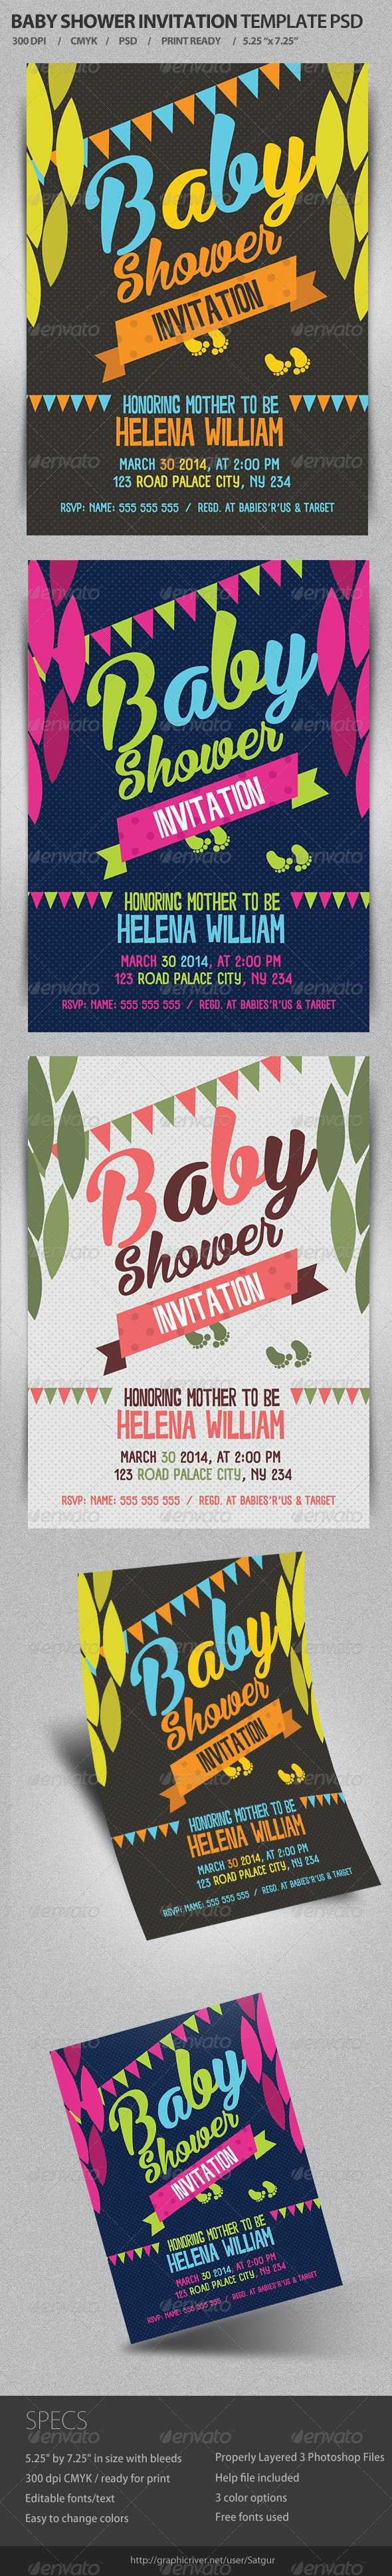 Baby Shower Invitation Template PSD - Events Flyers